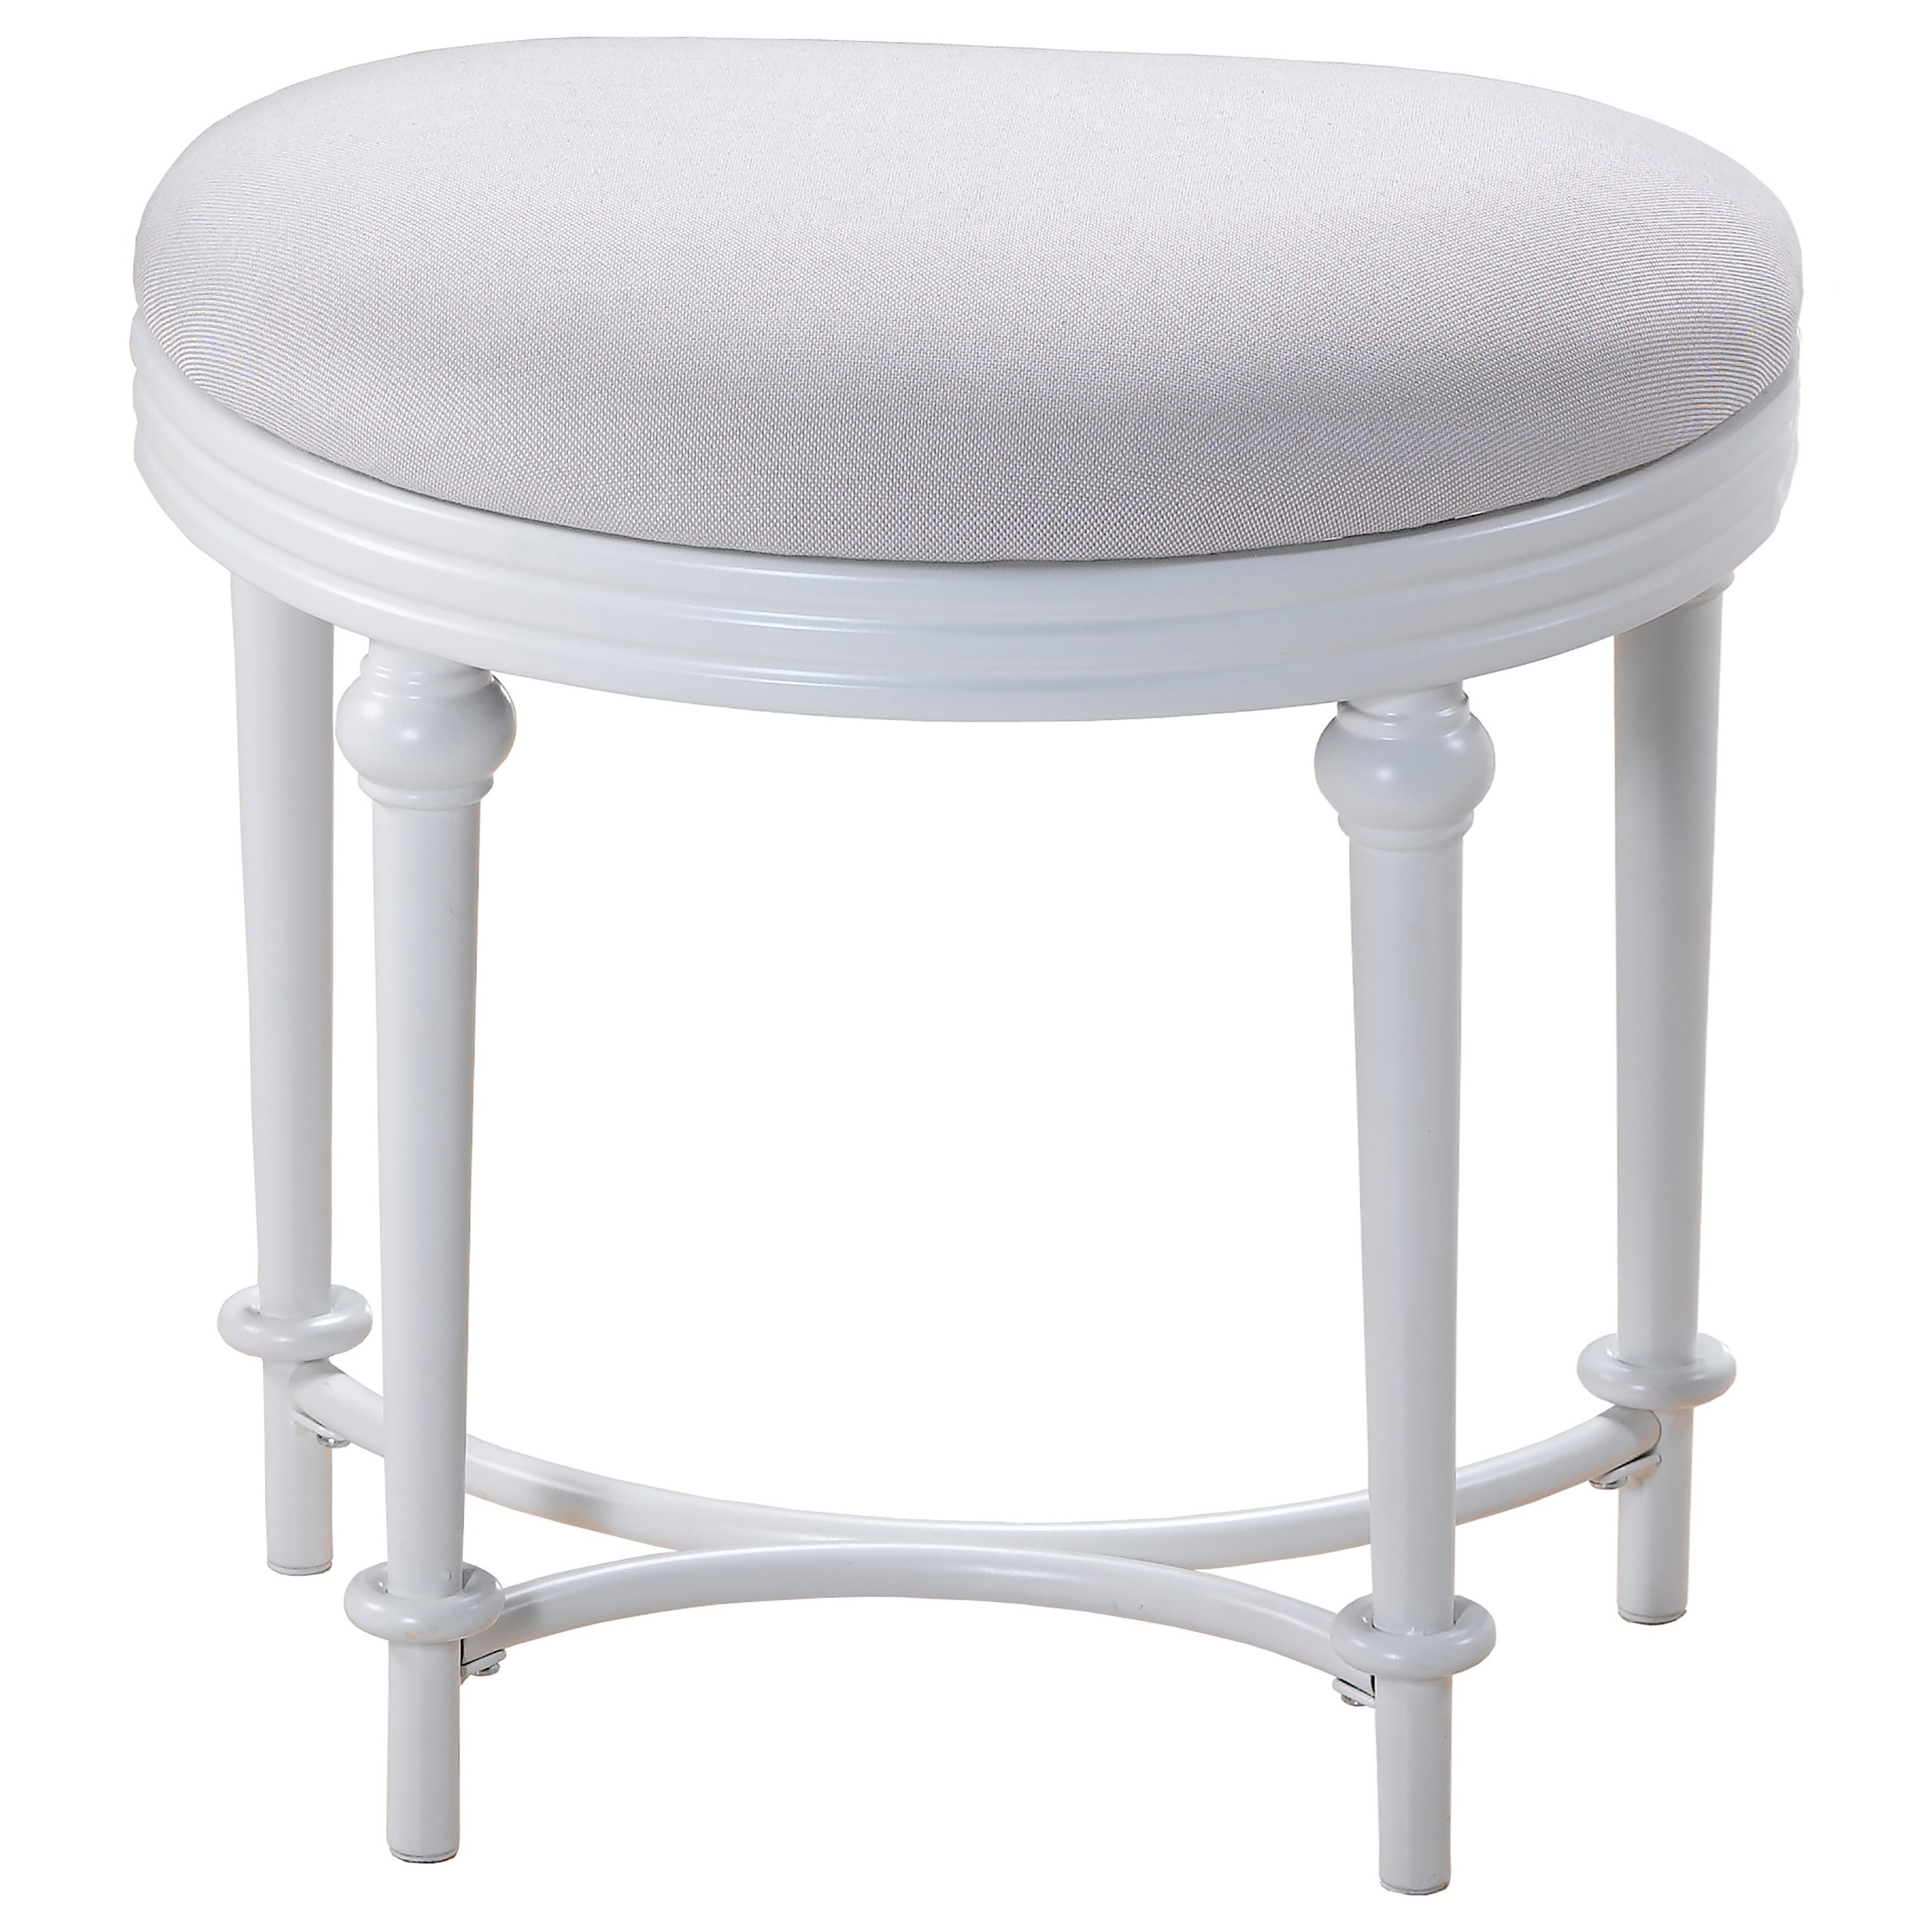 Hillsdale Vanity Stools Oval Vanity Stool With Upholstered Off White Seat Boulevard Home